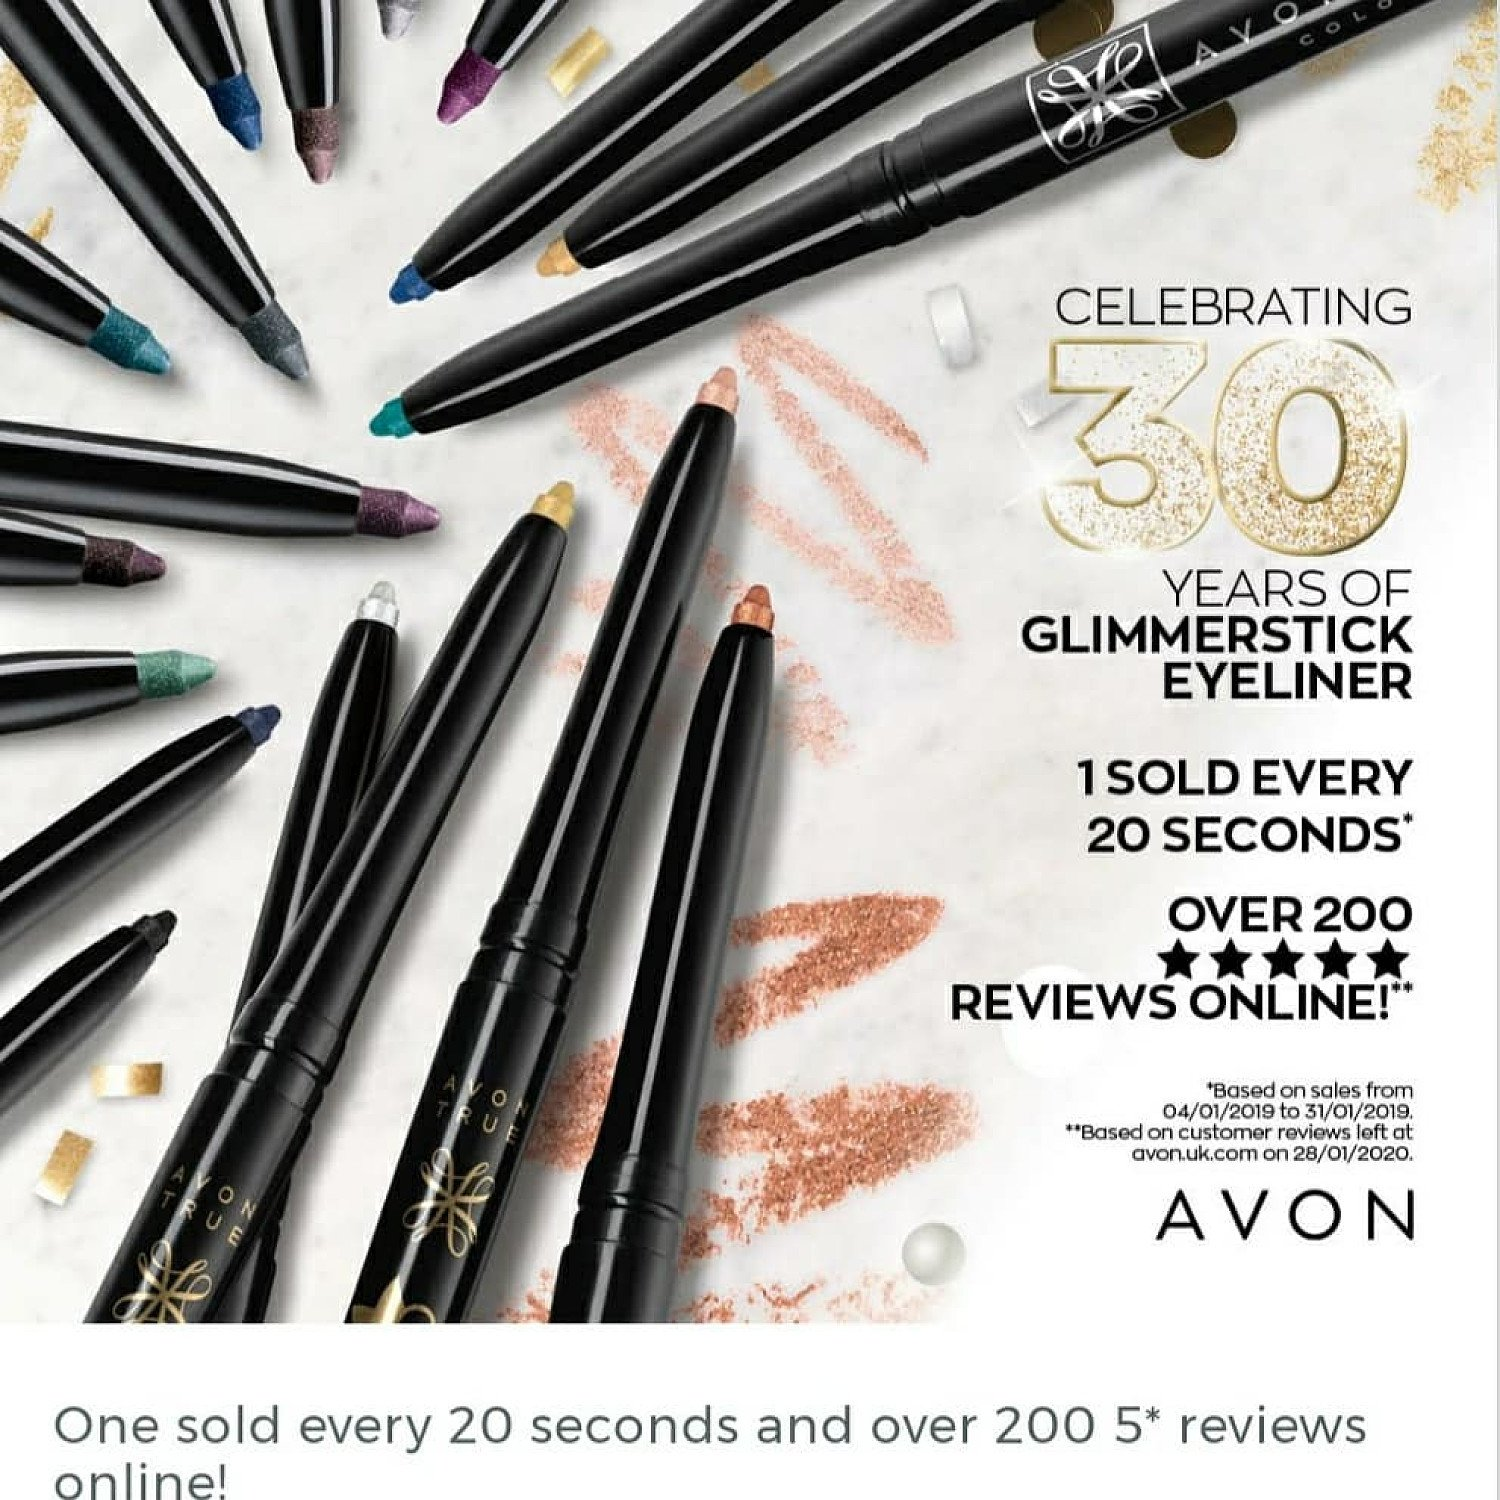 Get A Gift When You Spend £10 on Make Up